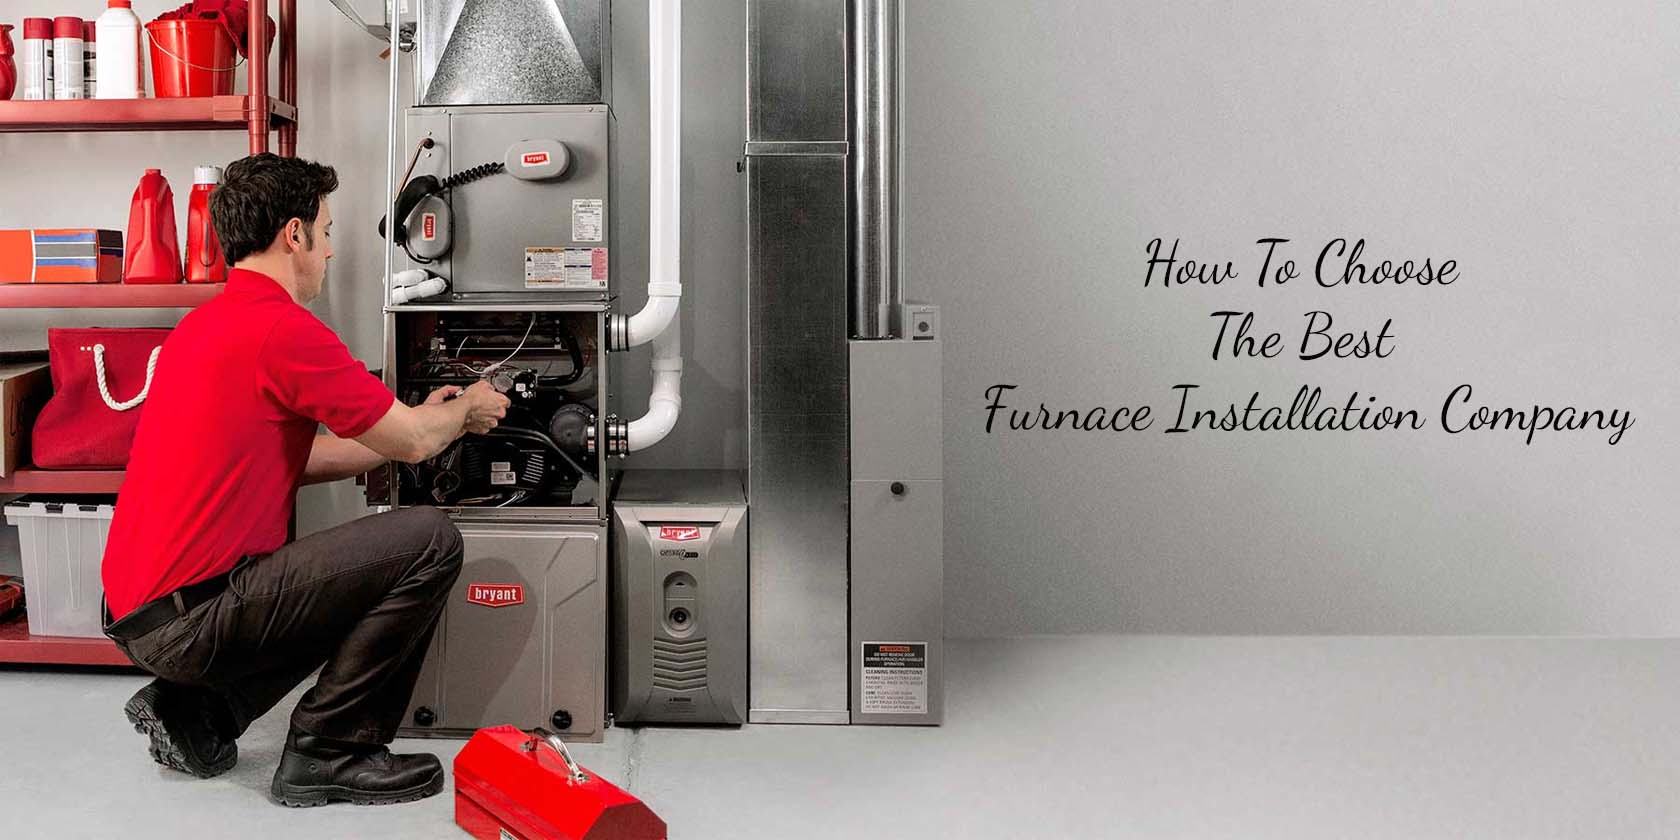 How To Choose The Best Furnace Installation Company